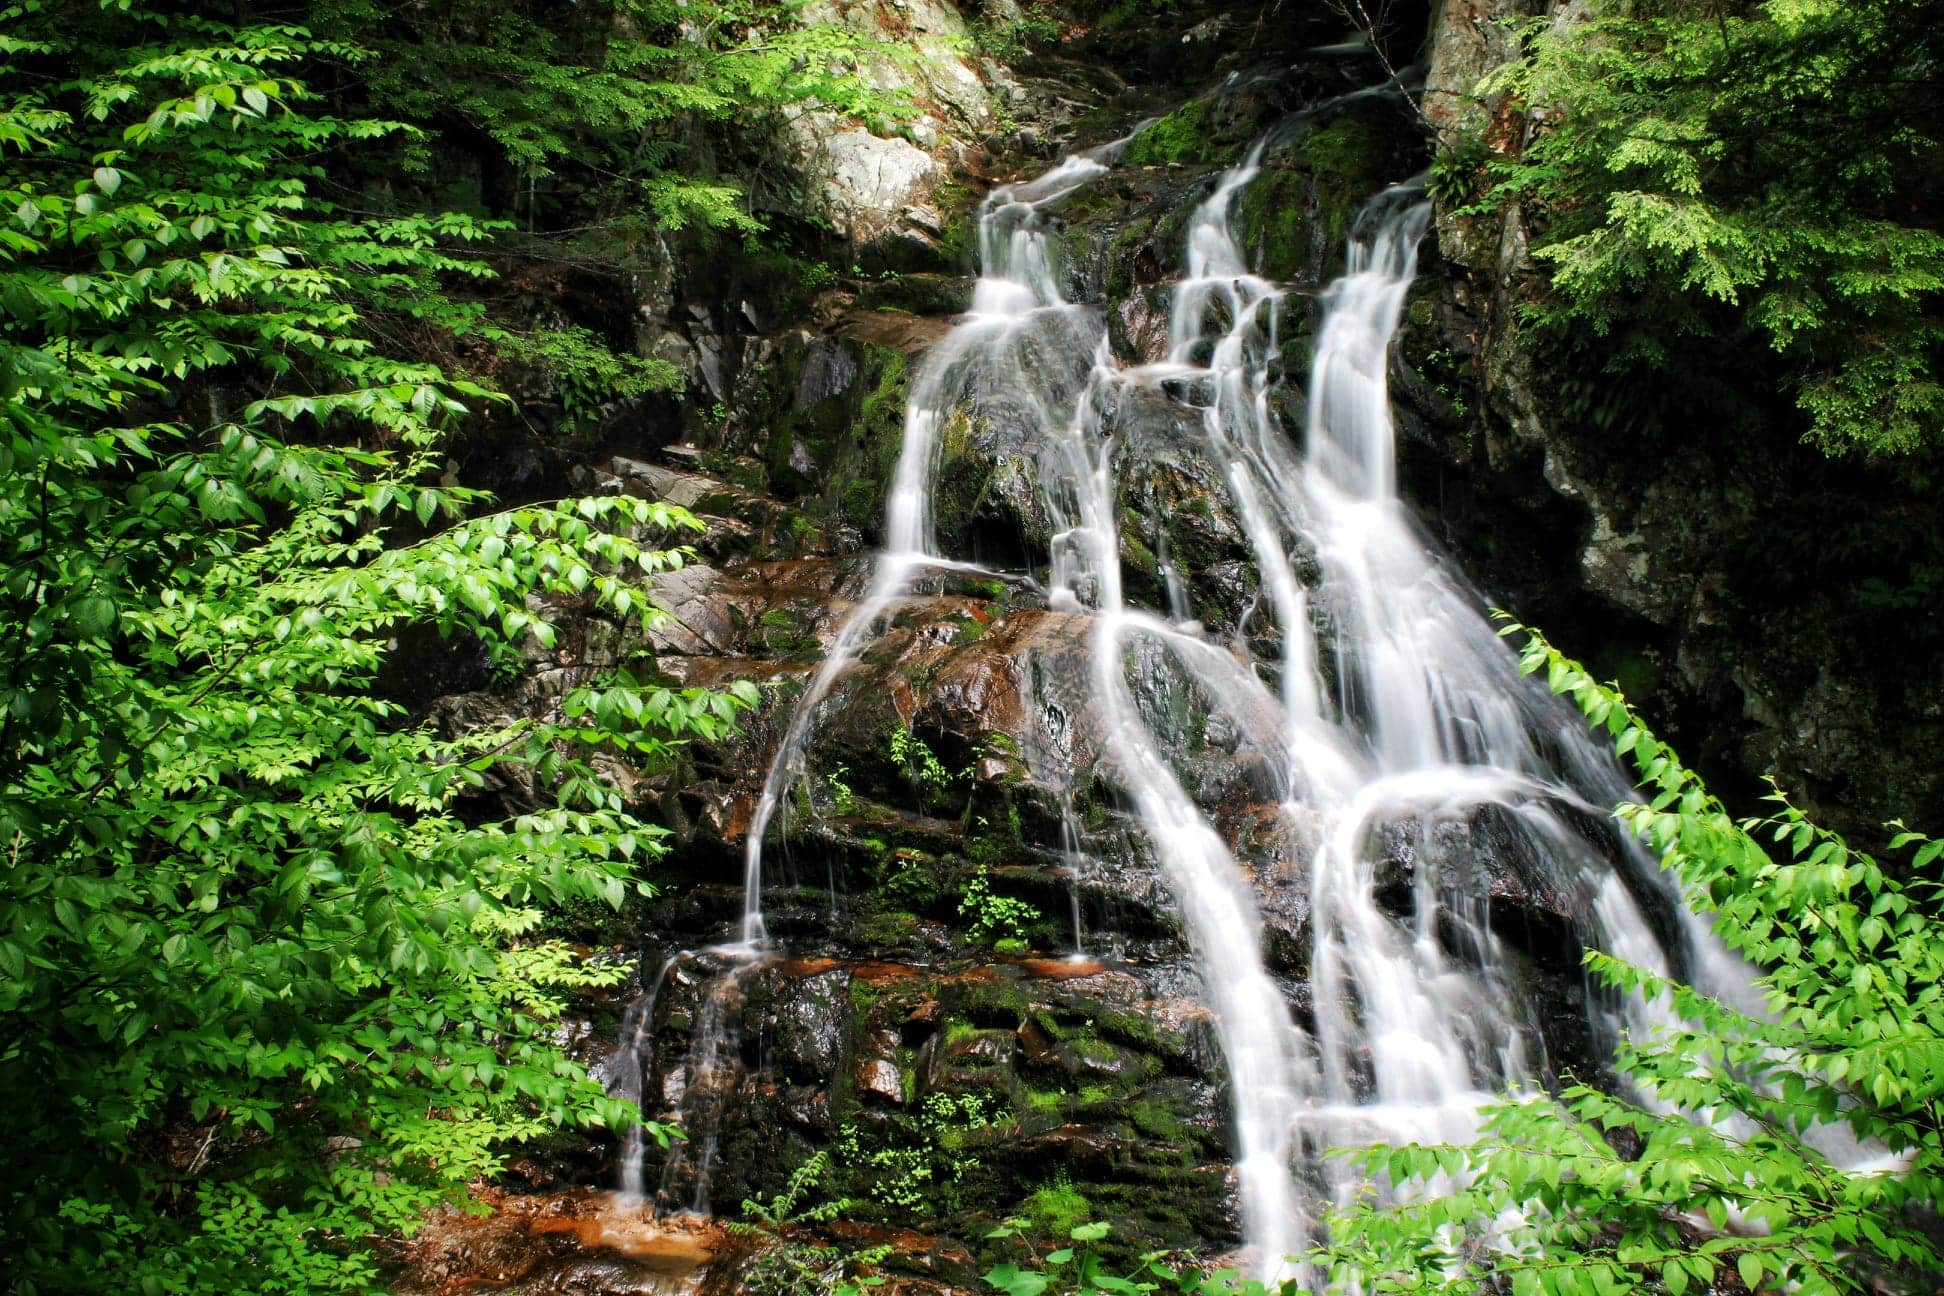 Seven Waterfalls in One Short Hike | More than the Fall of Song